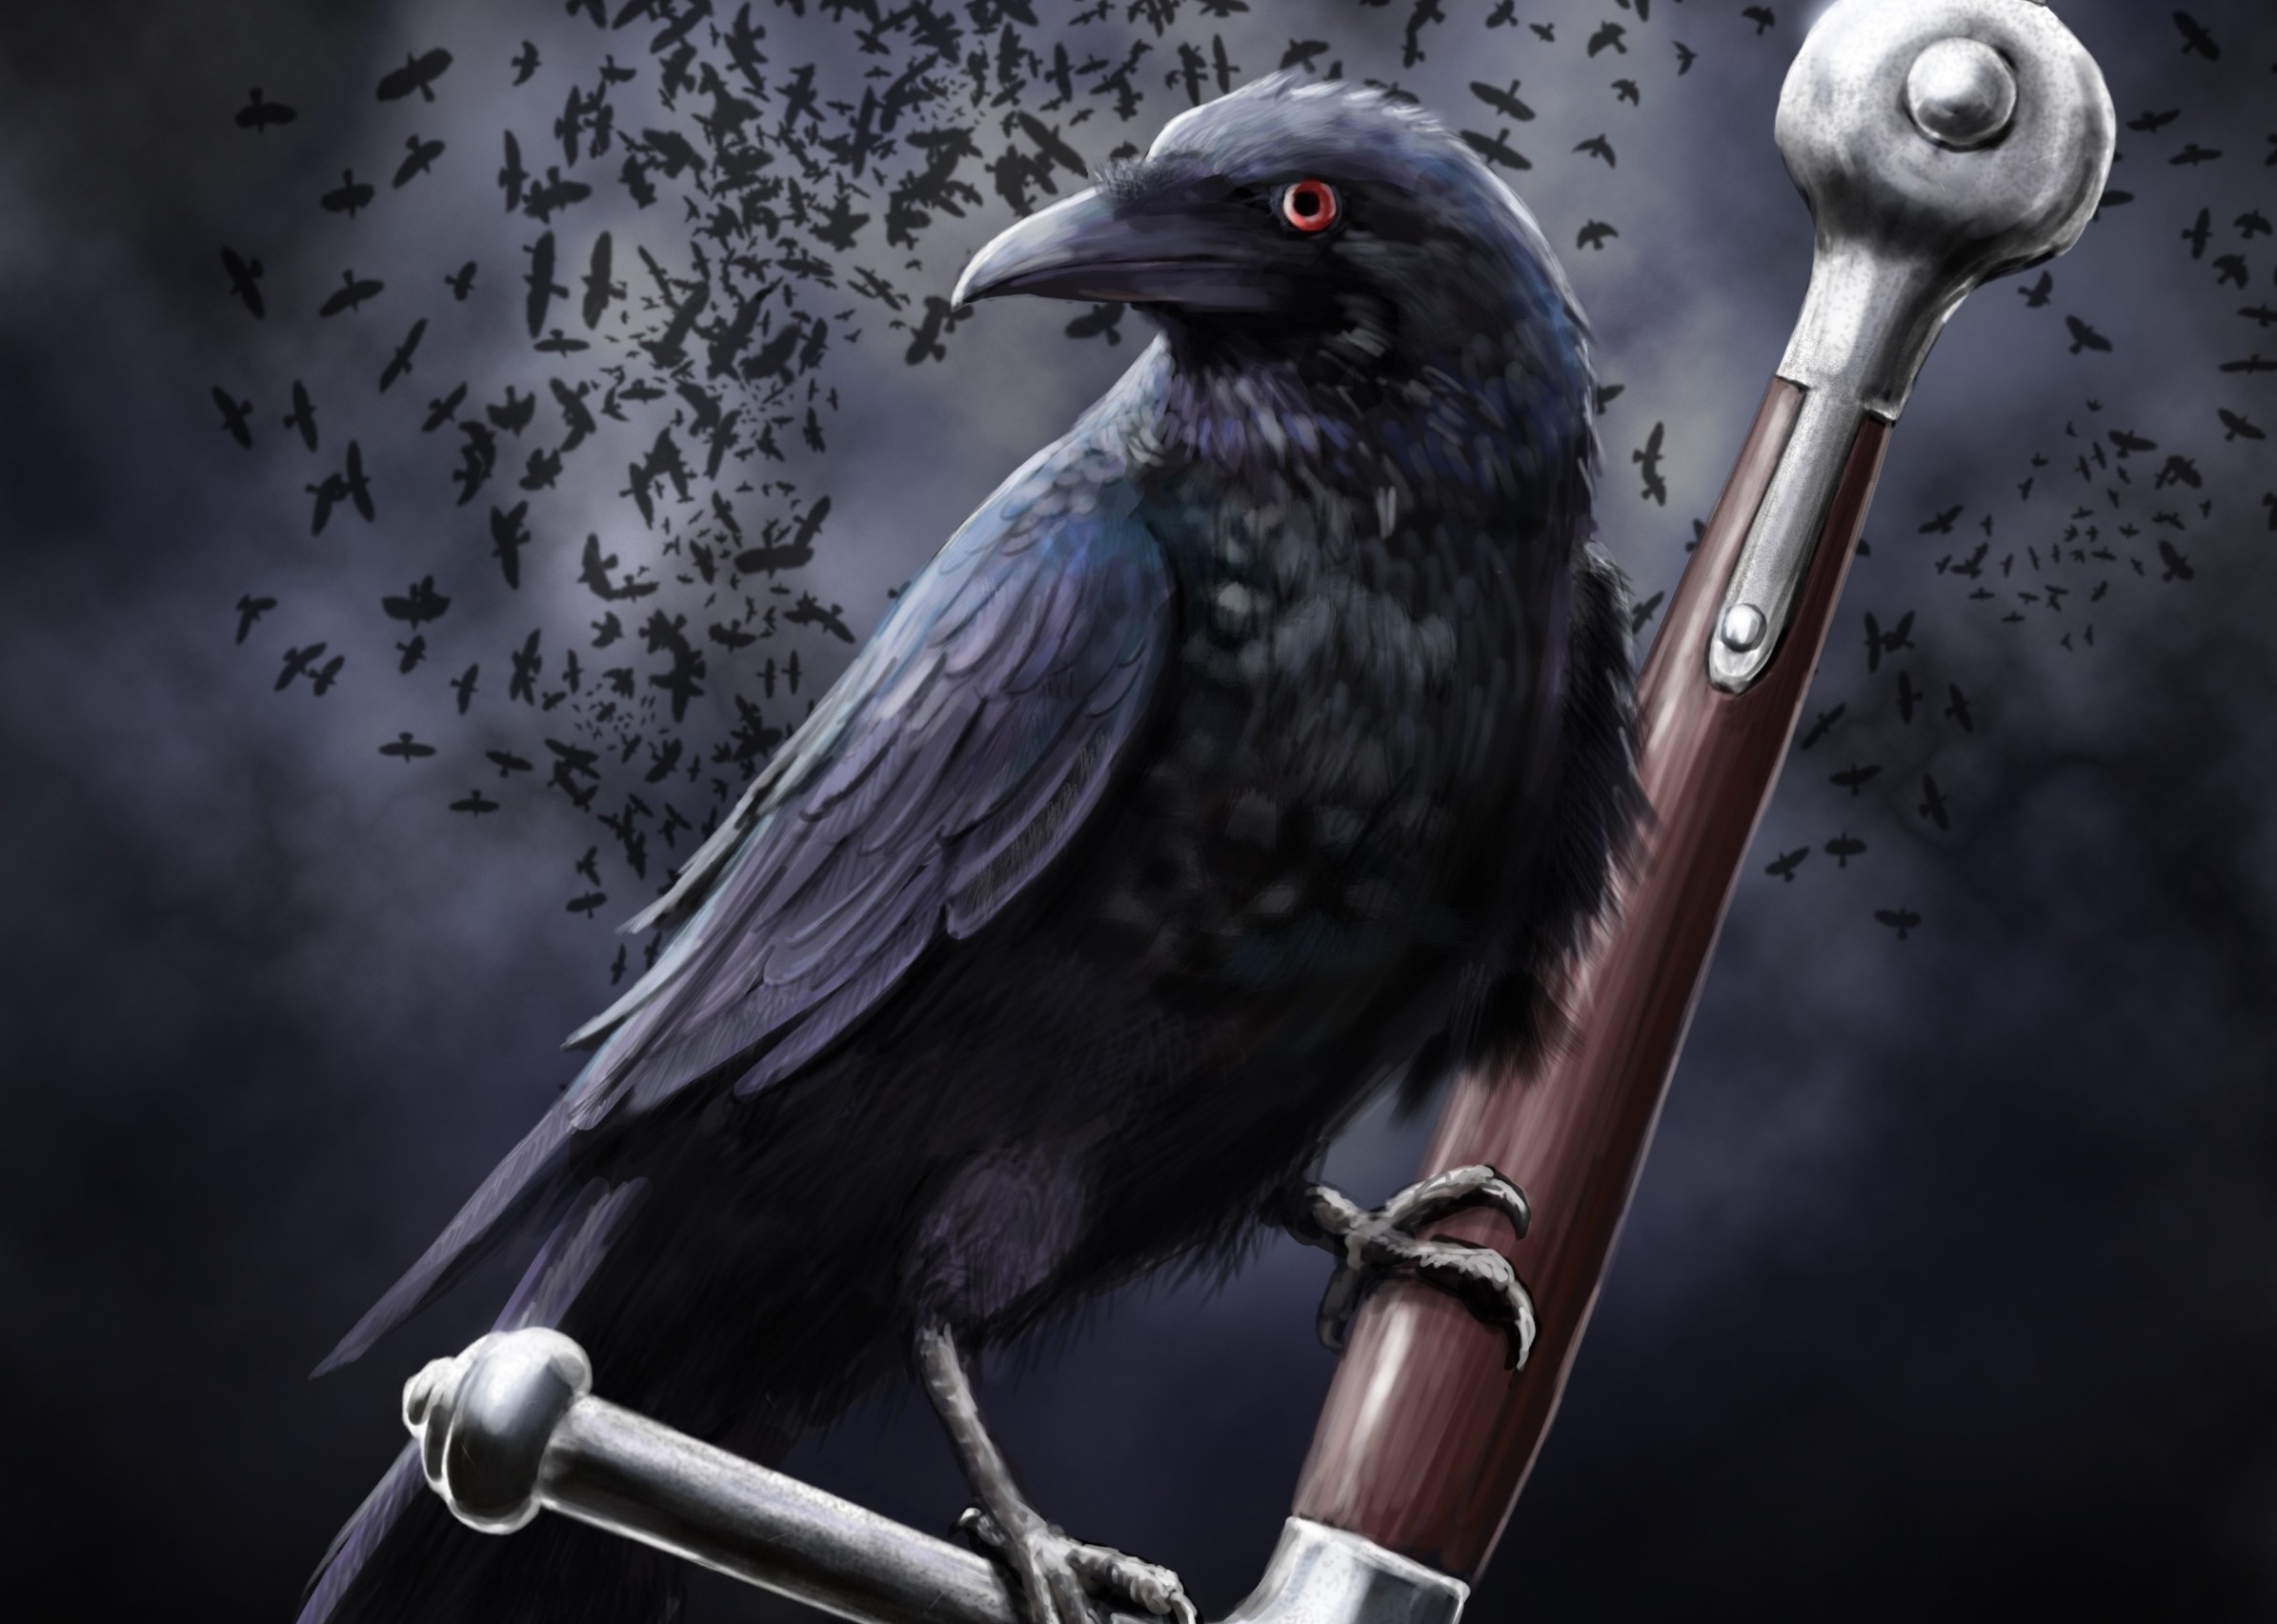 art leather raven crow clouds sword death dark swords weapon weapons 2390x1705